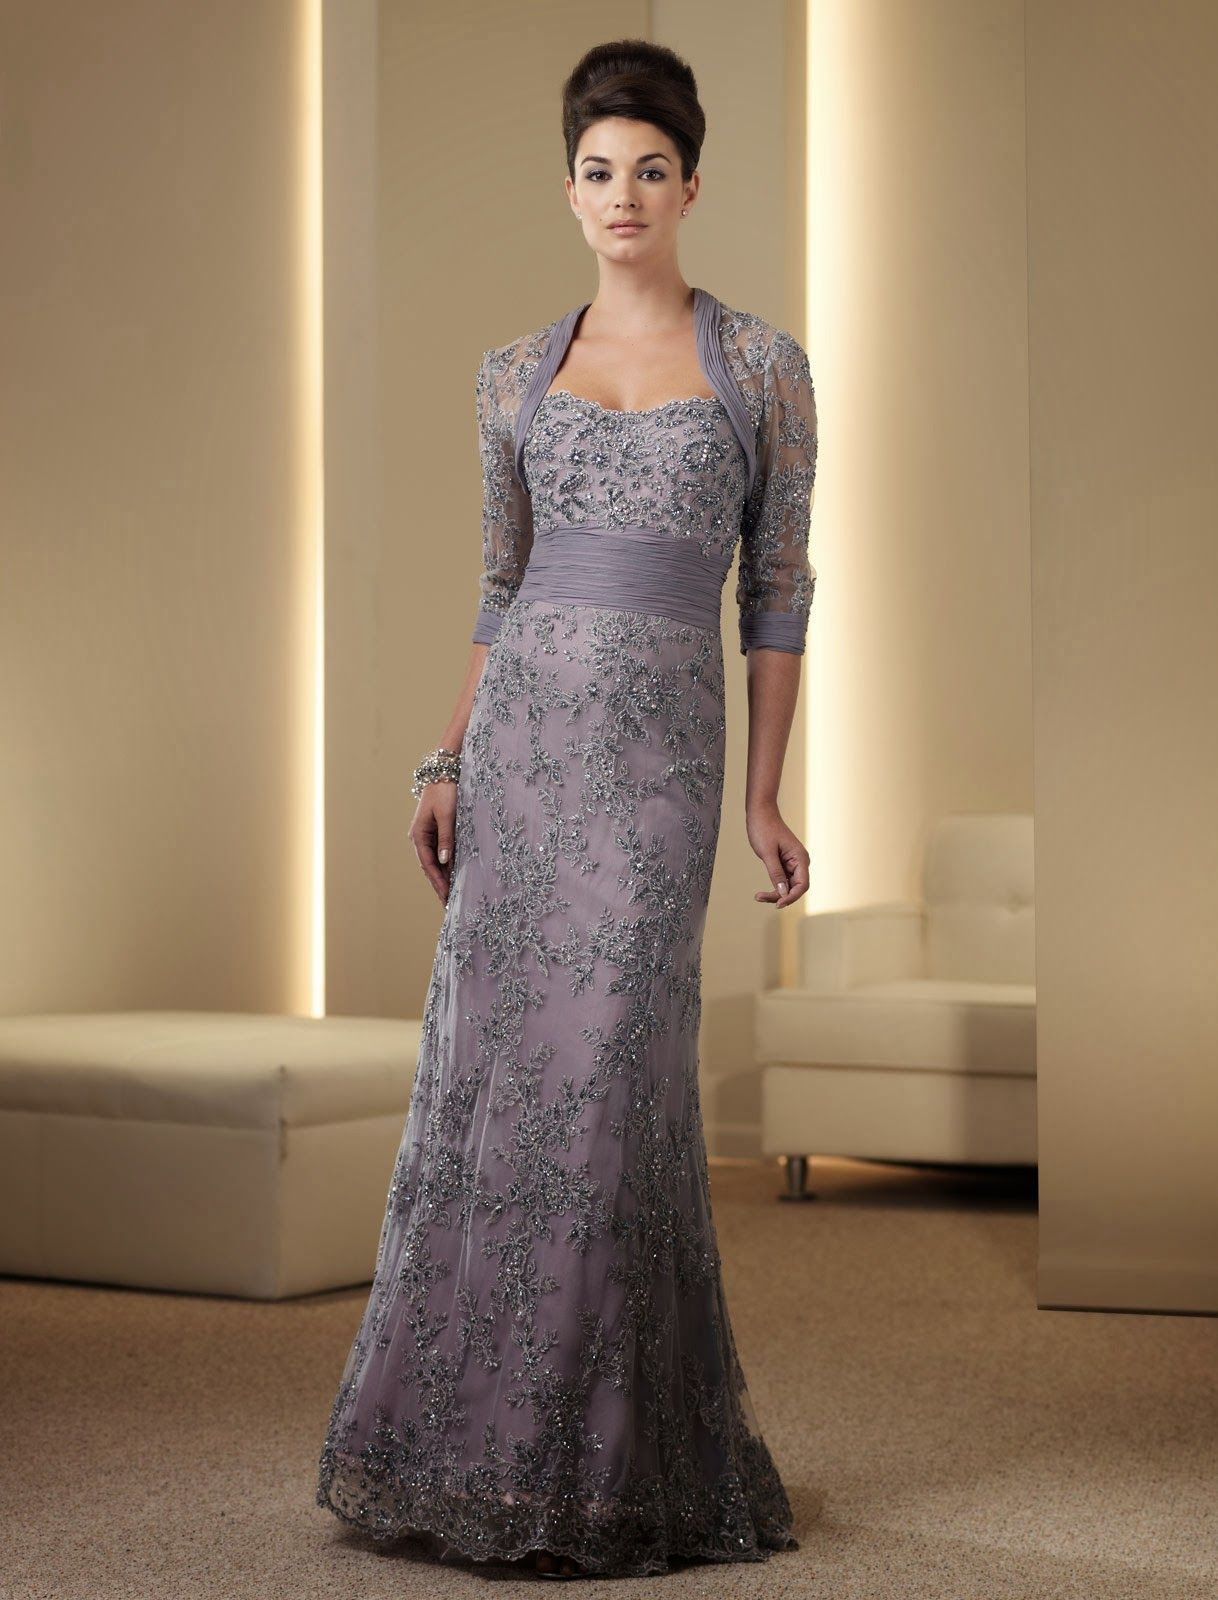 Wedding dresses for second marriages over 40 wedding for Wedding dresses older brides second marriages